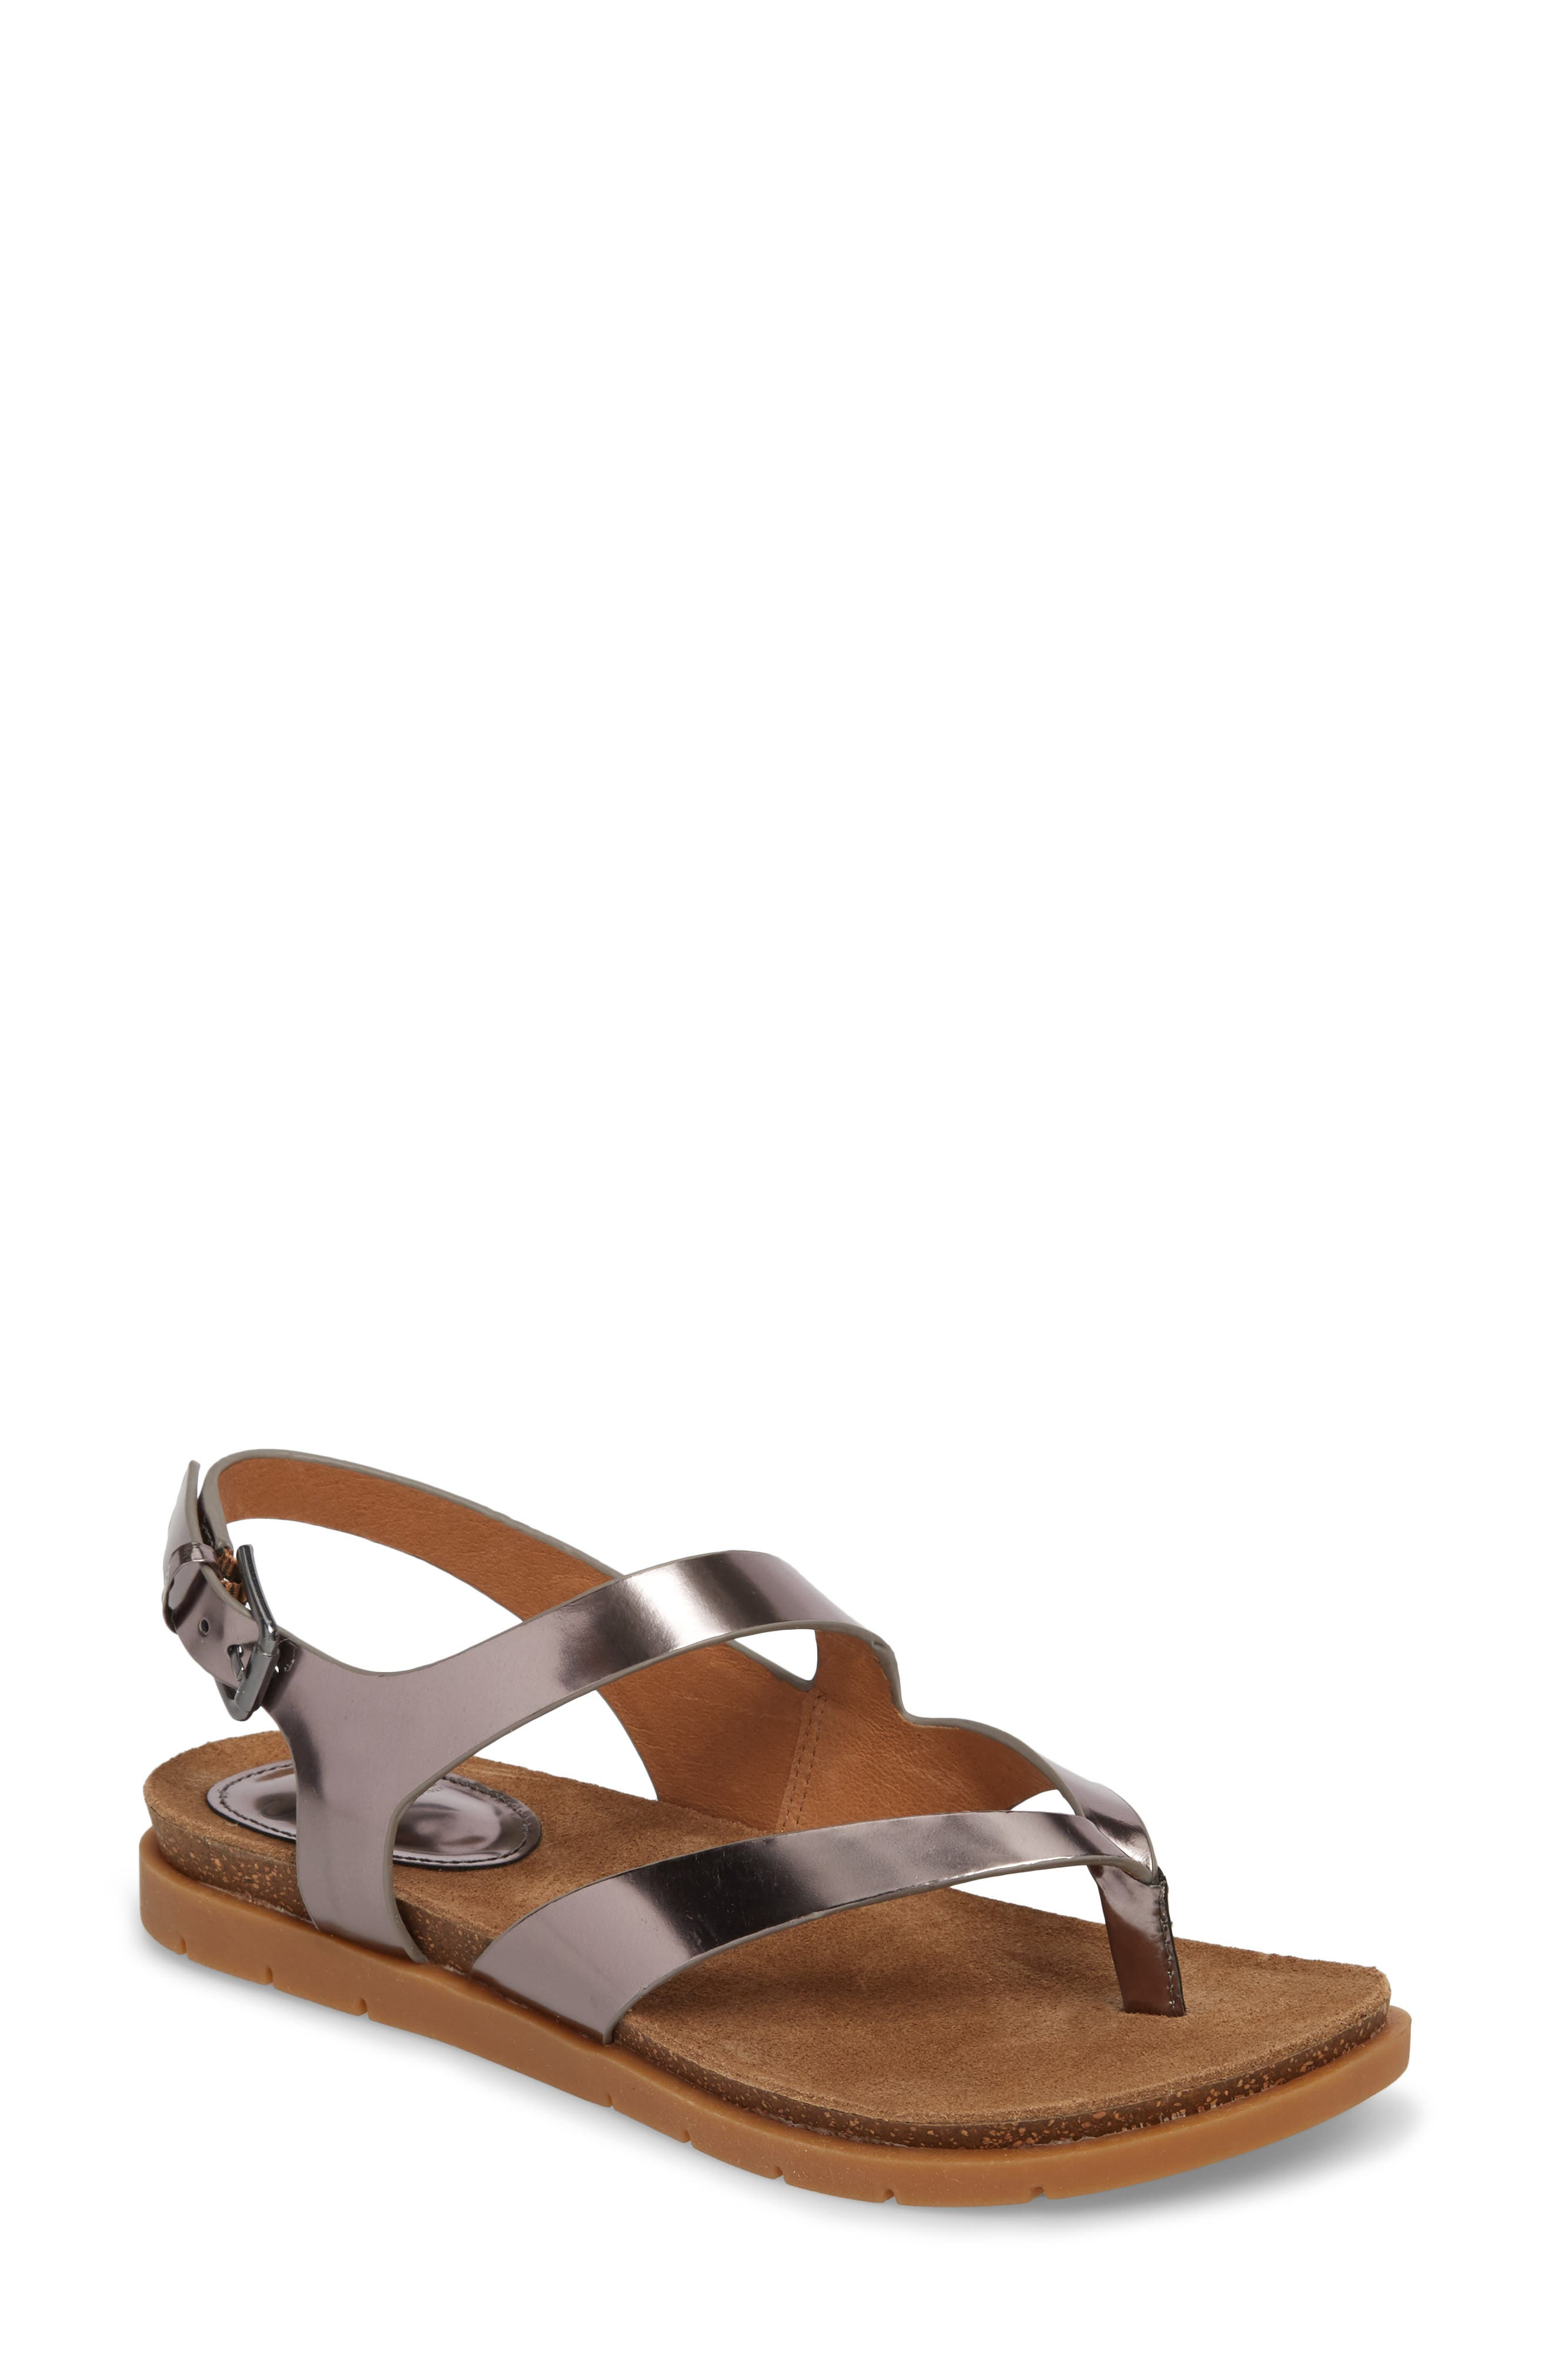 Rory Sandal,                         Main,                         color, Pewter Metallic Leather